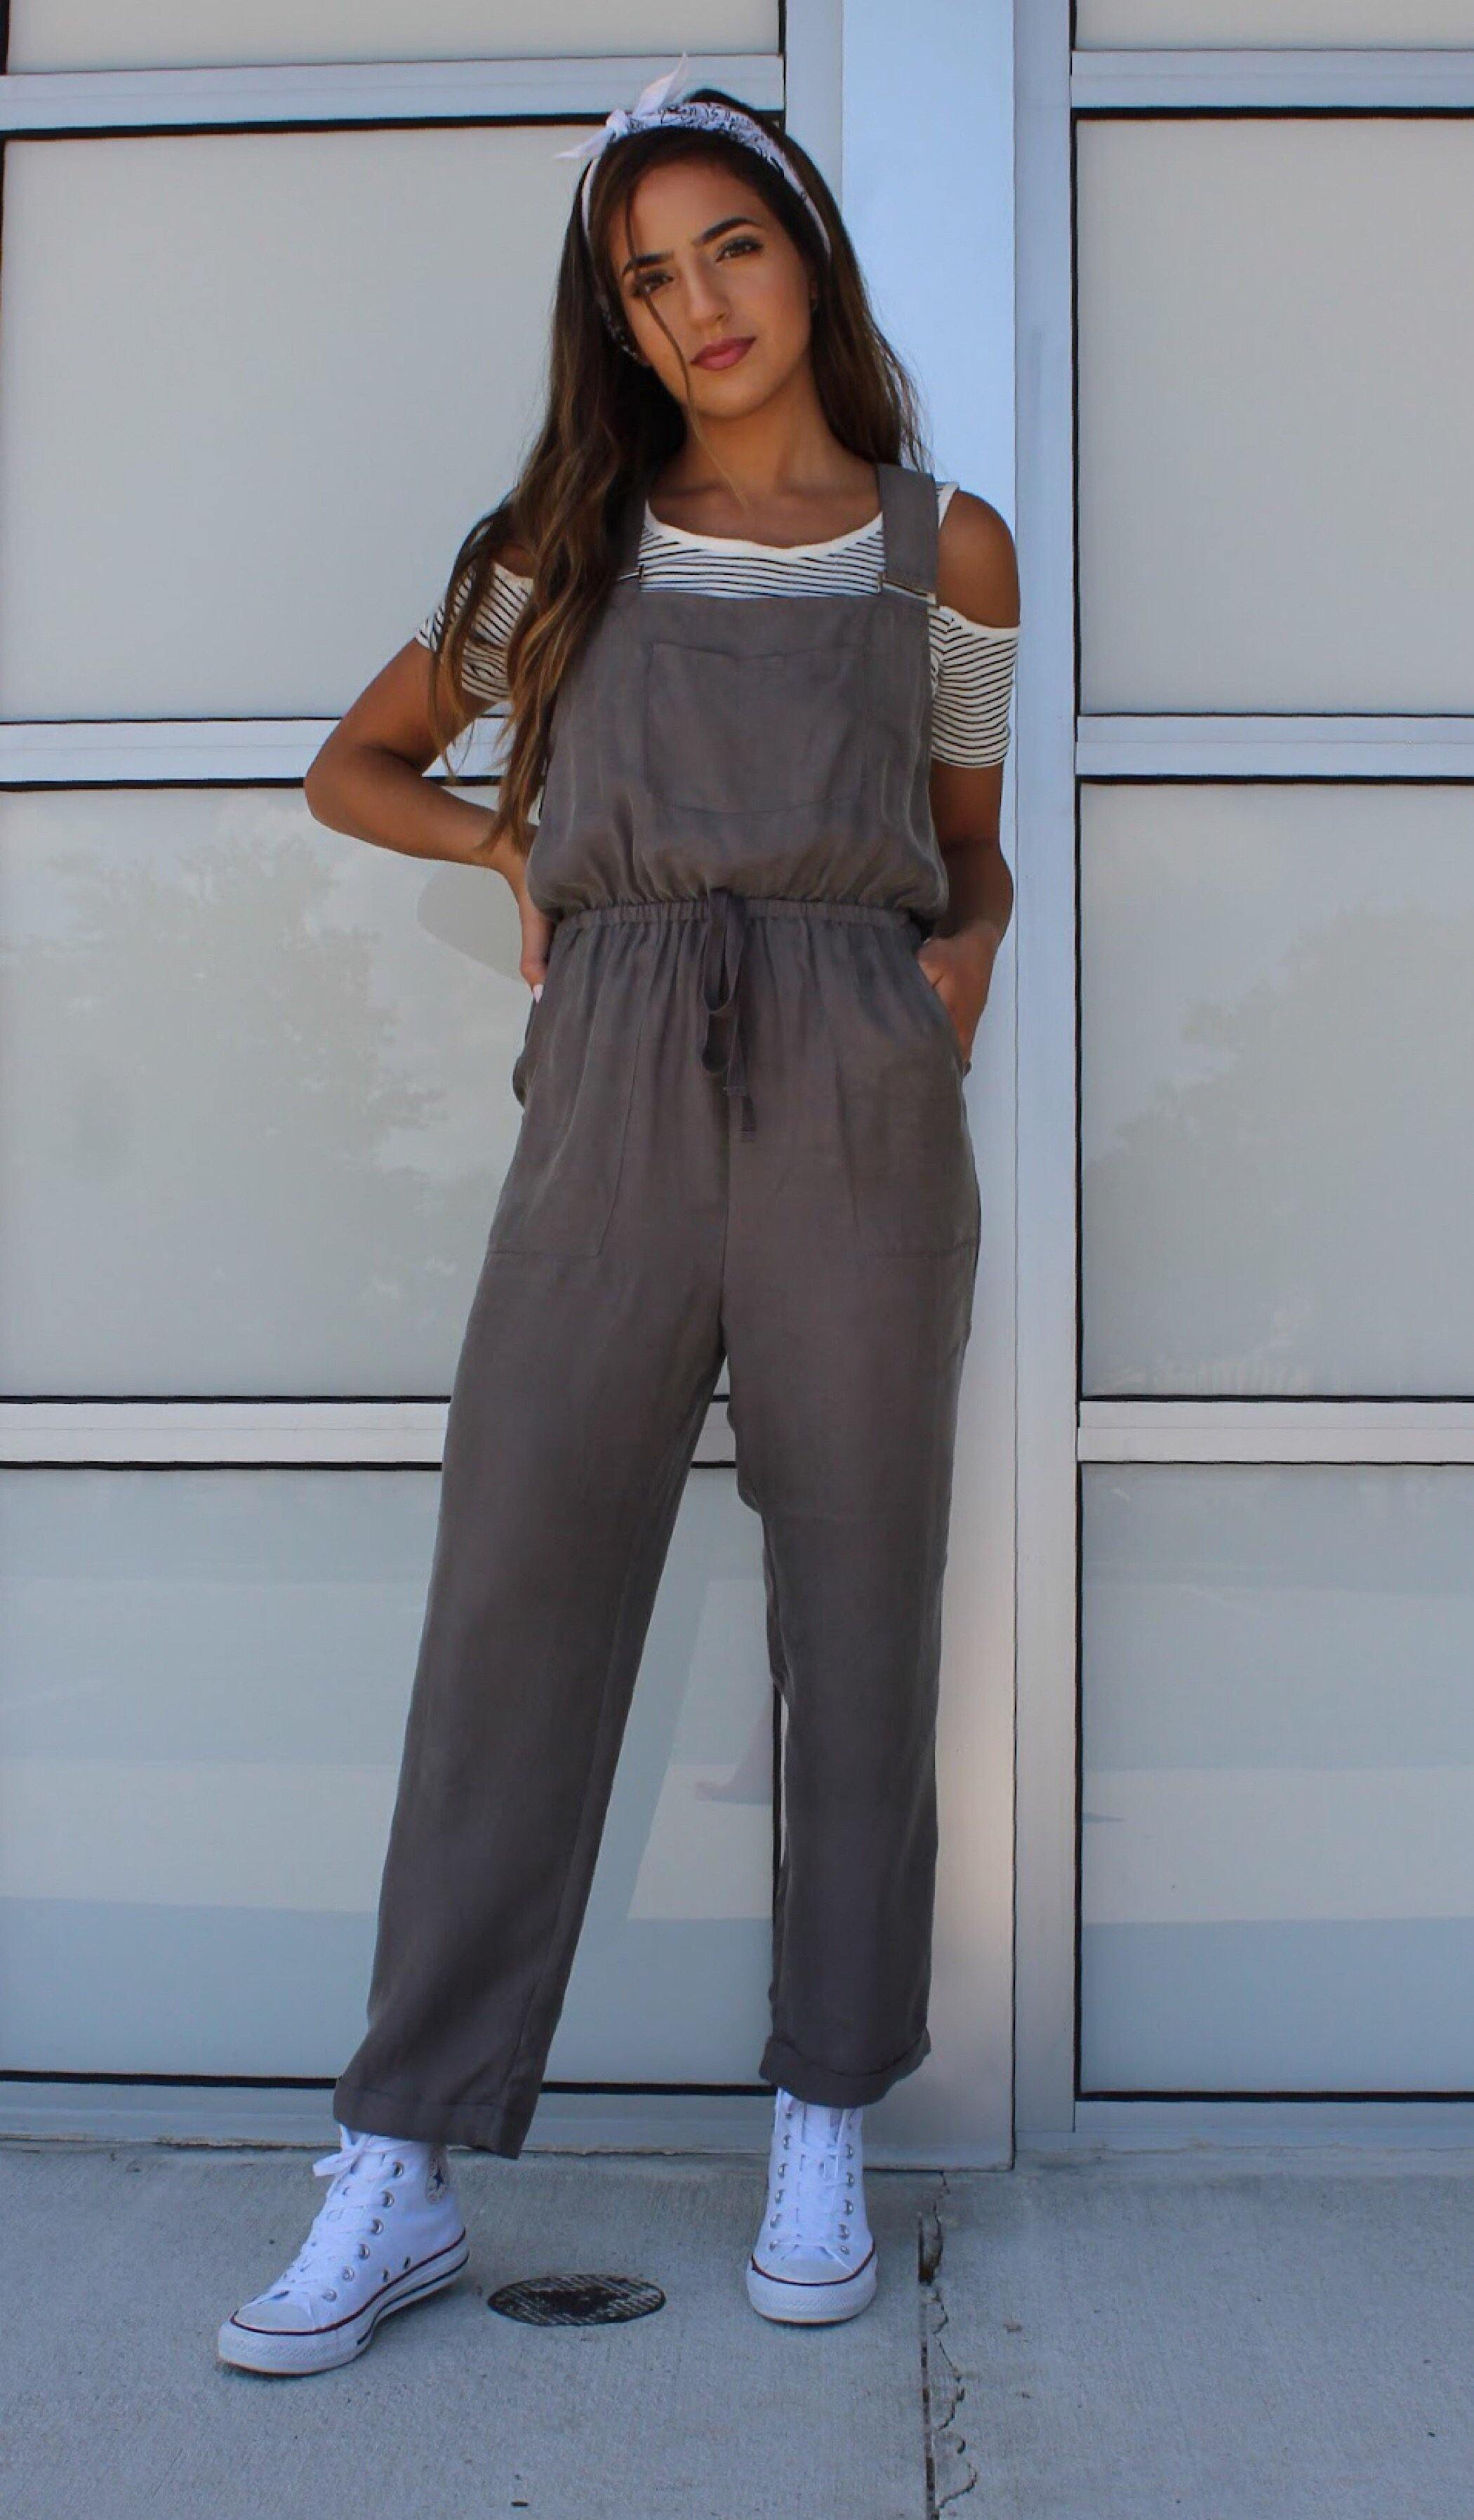 CROPPED OVERALLS - elbie boutique, LLC